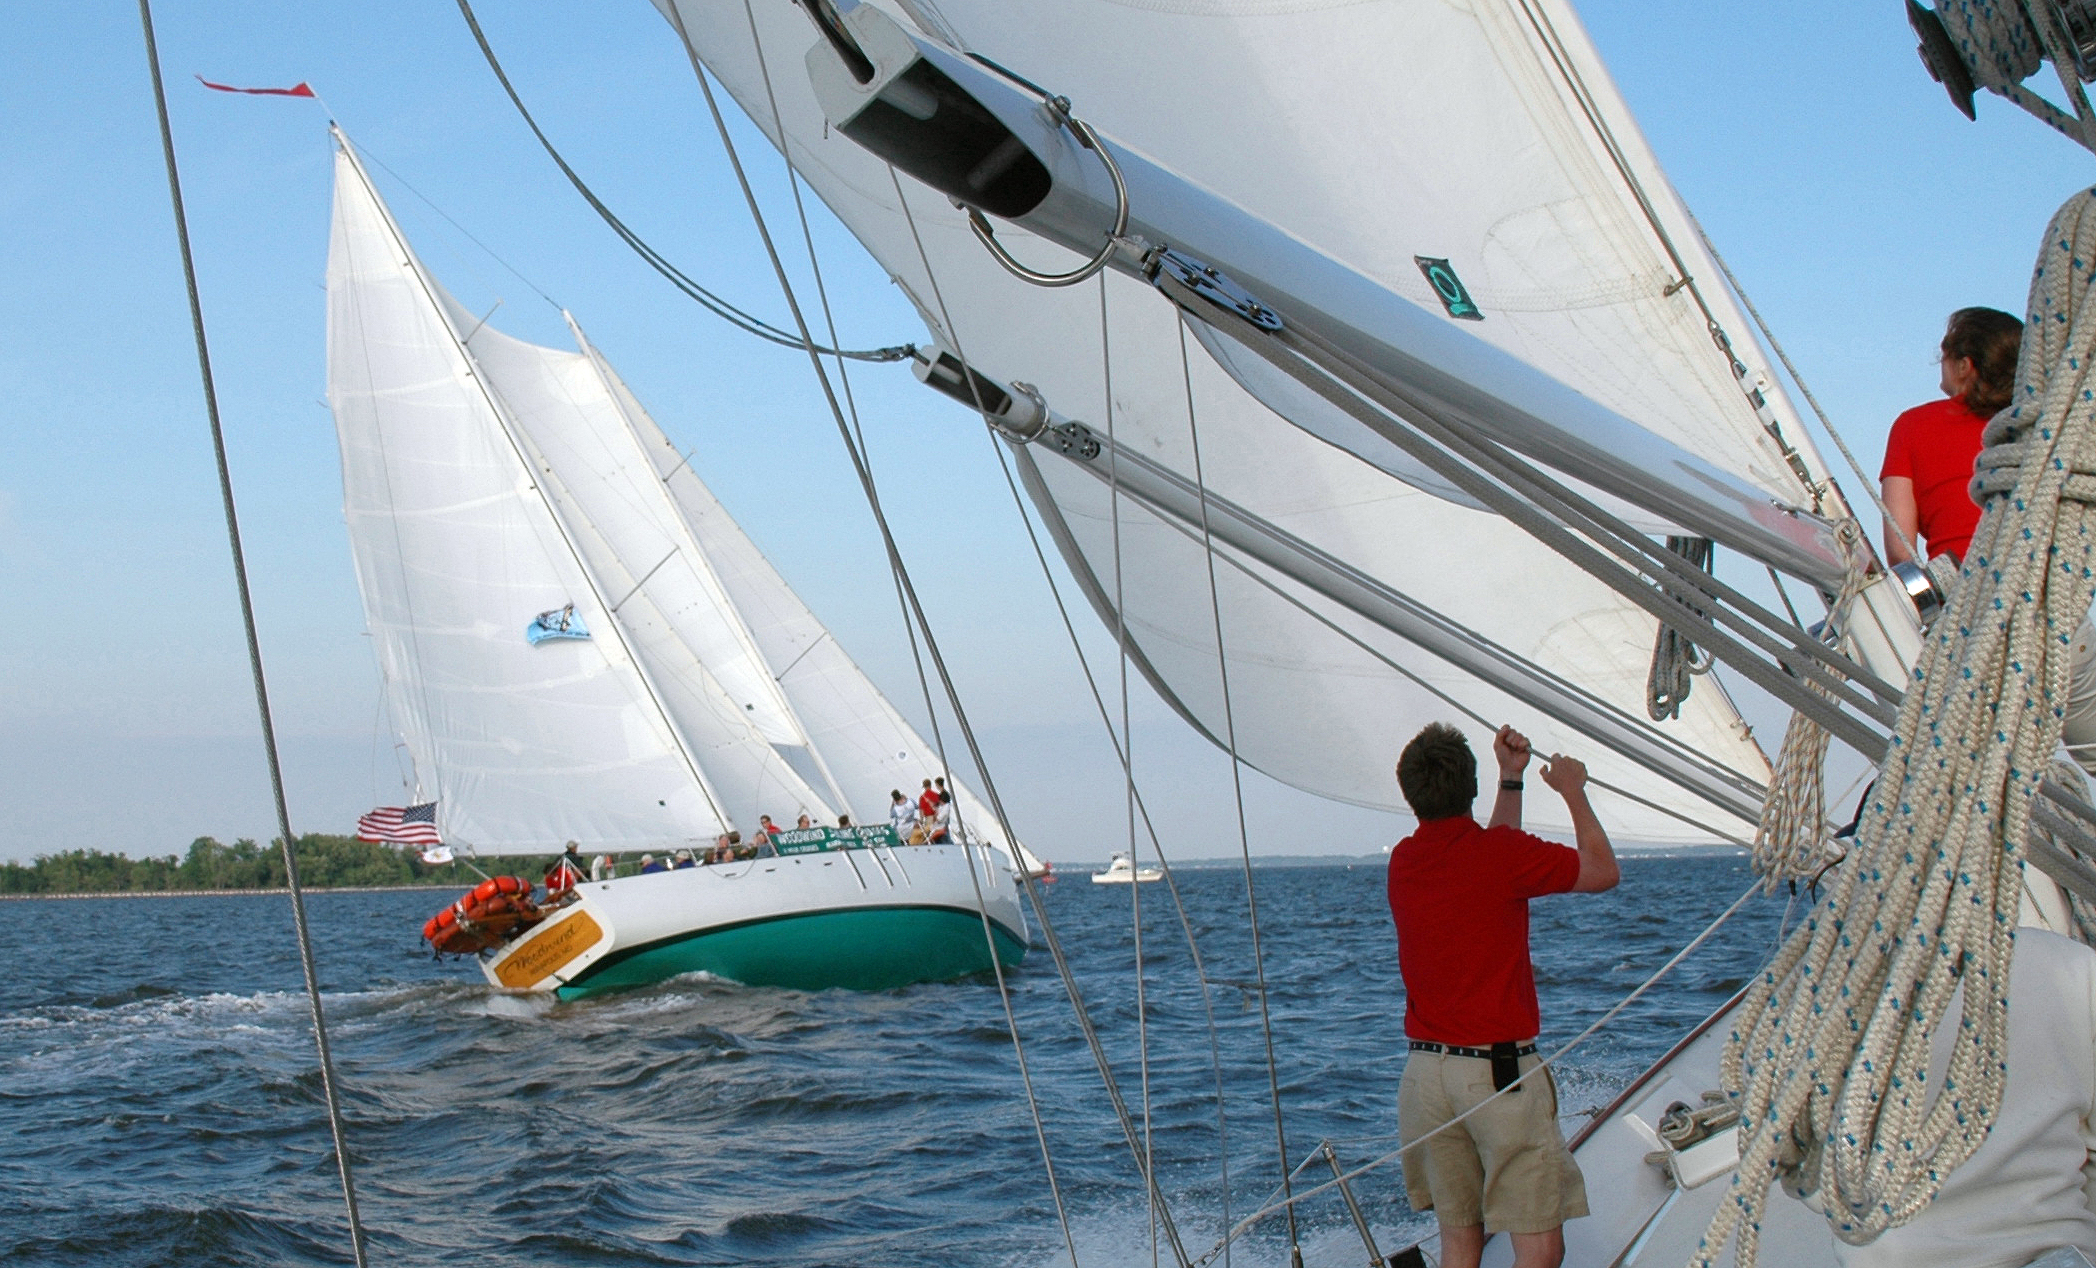 Both of the Schooners sailing against each other in team challenge